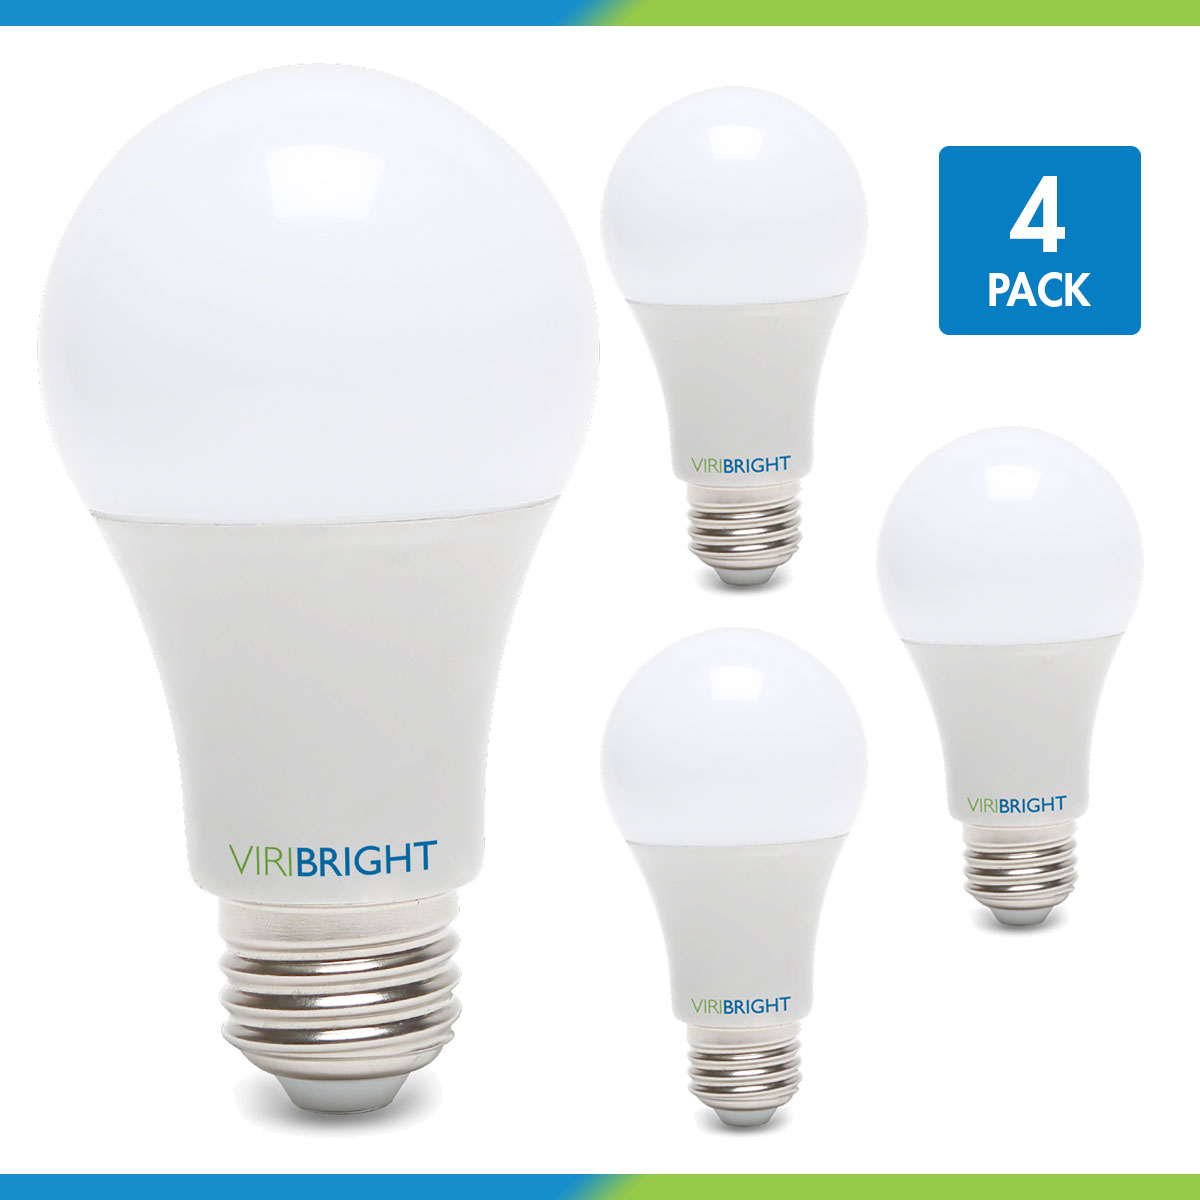 Viribright 100 Watt Equivalent LED Light Bulb, 2700K Warm White (Soft White), Medium Screw Base (E26), Pack of 4